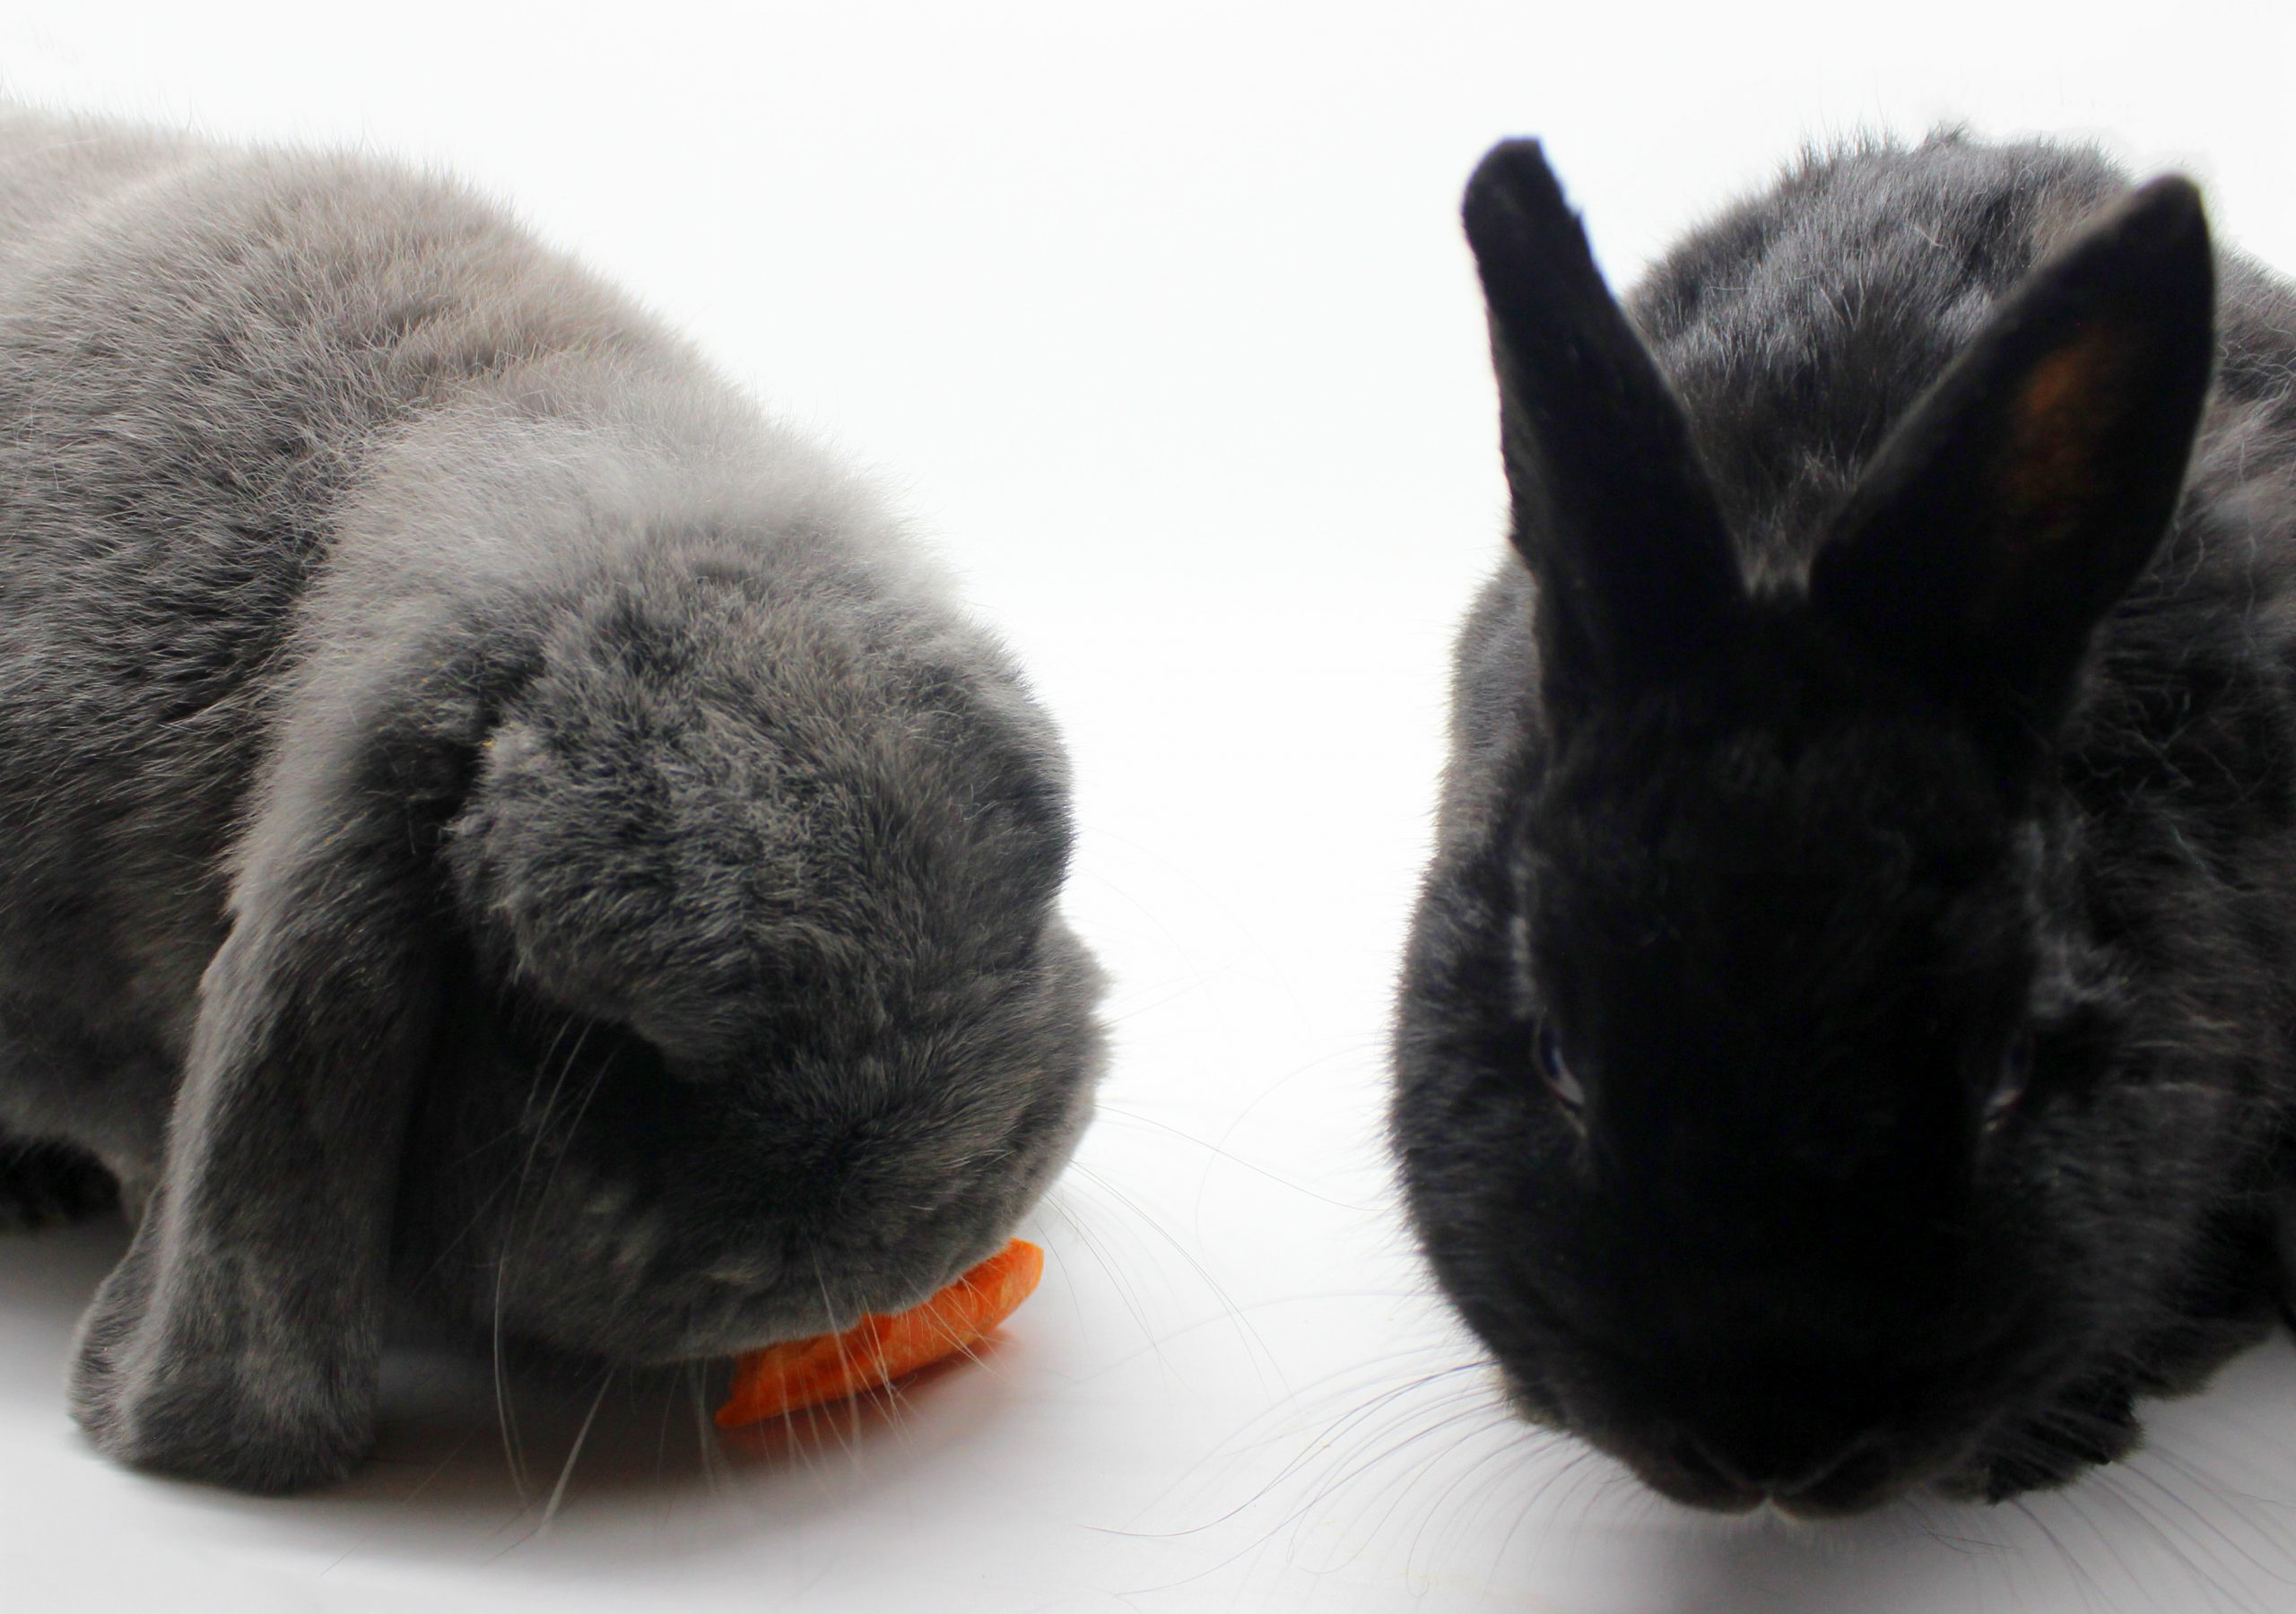 Two cute bunnies and a carrot